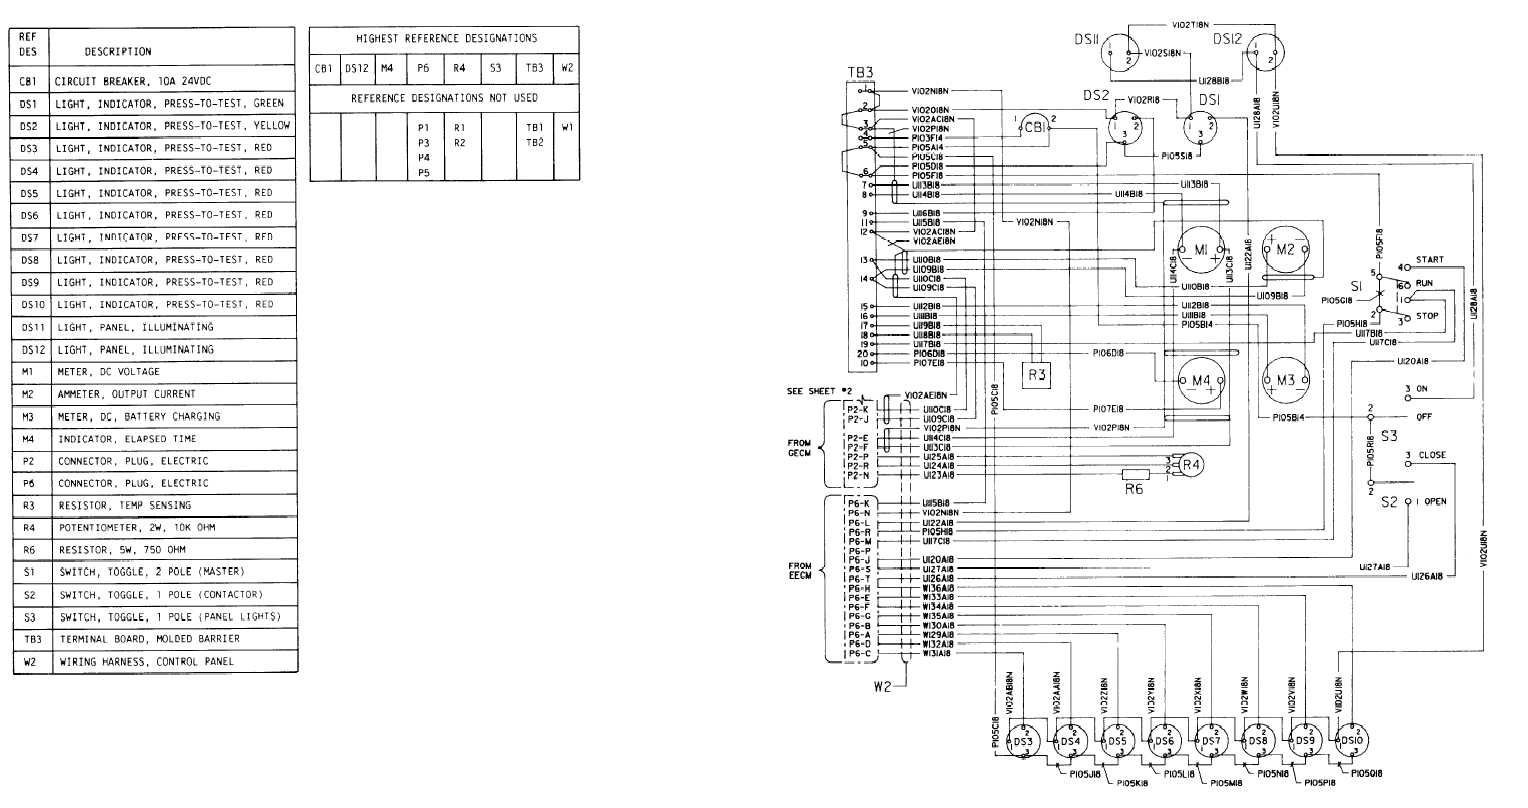 Control Panel Wiring Diagram Gallery